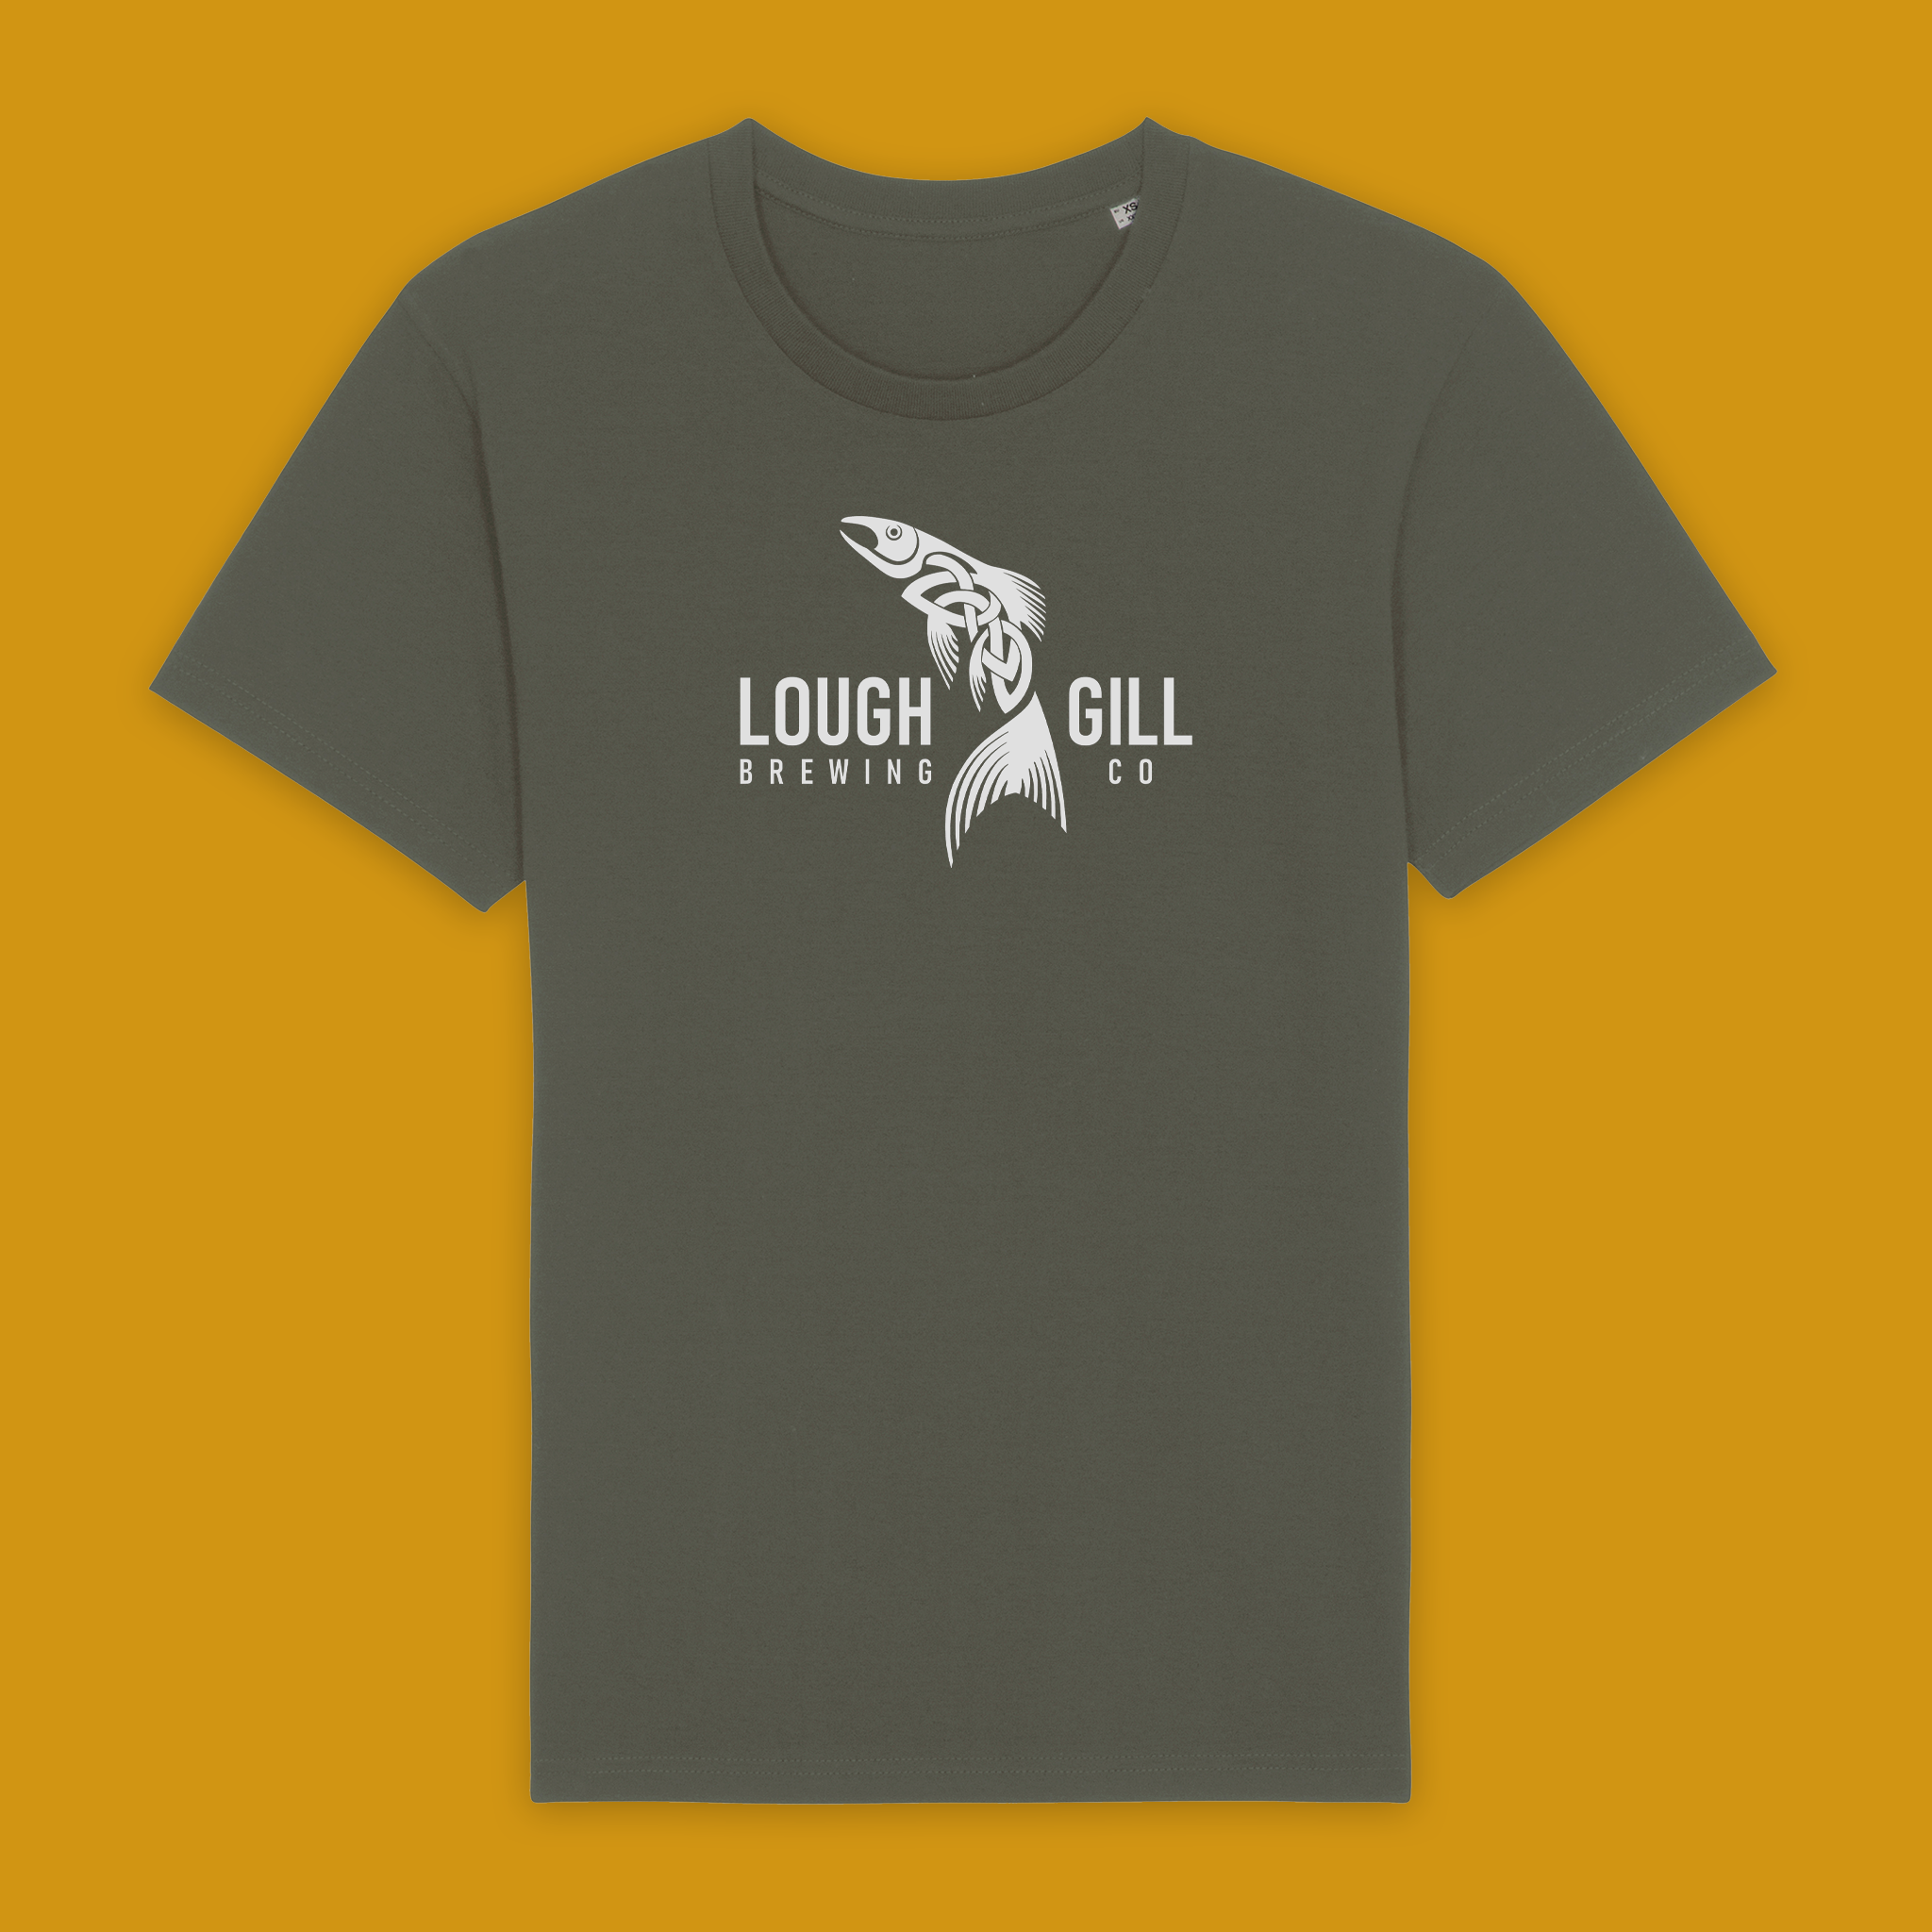 Lough Gill Brewing Co | Unisex Tees